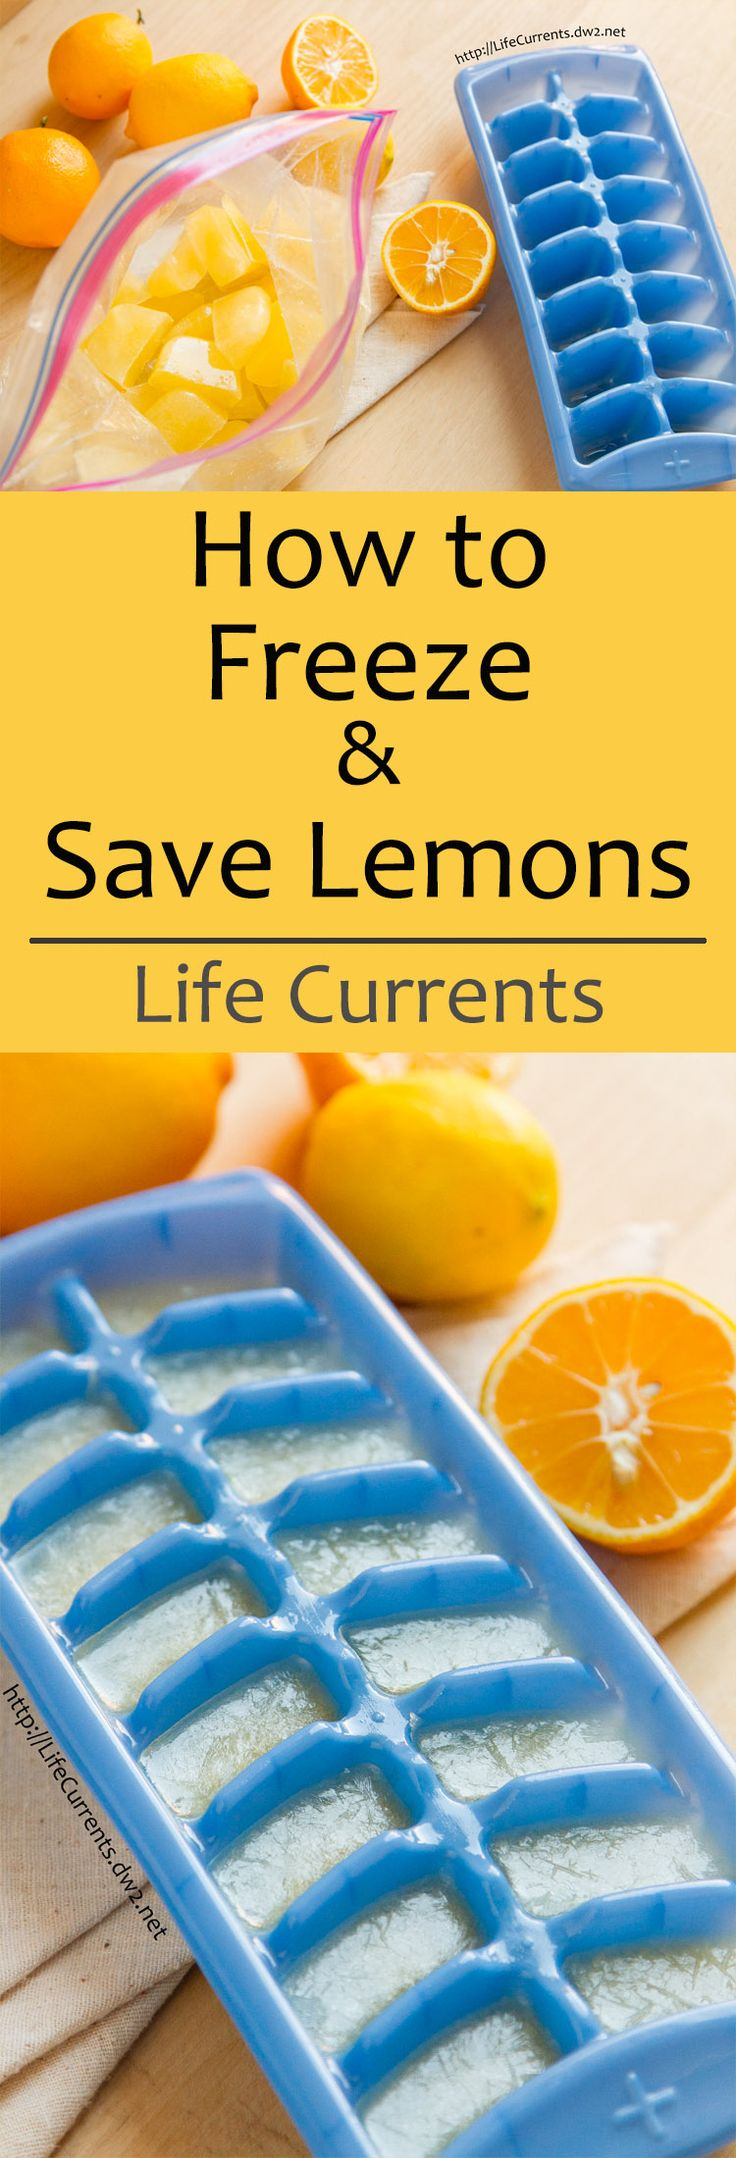 How to Freeze and Save Lemons by Life Currents. A super easy way to have fresh lemon juice all the time!